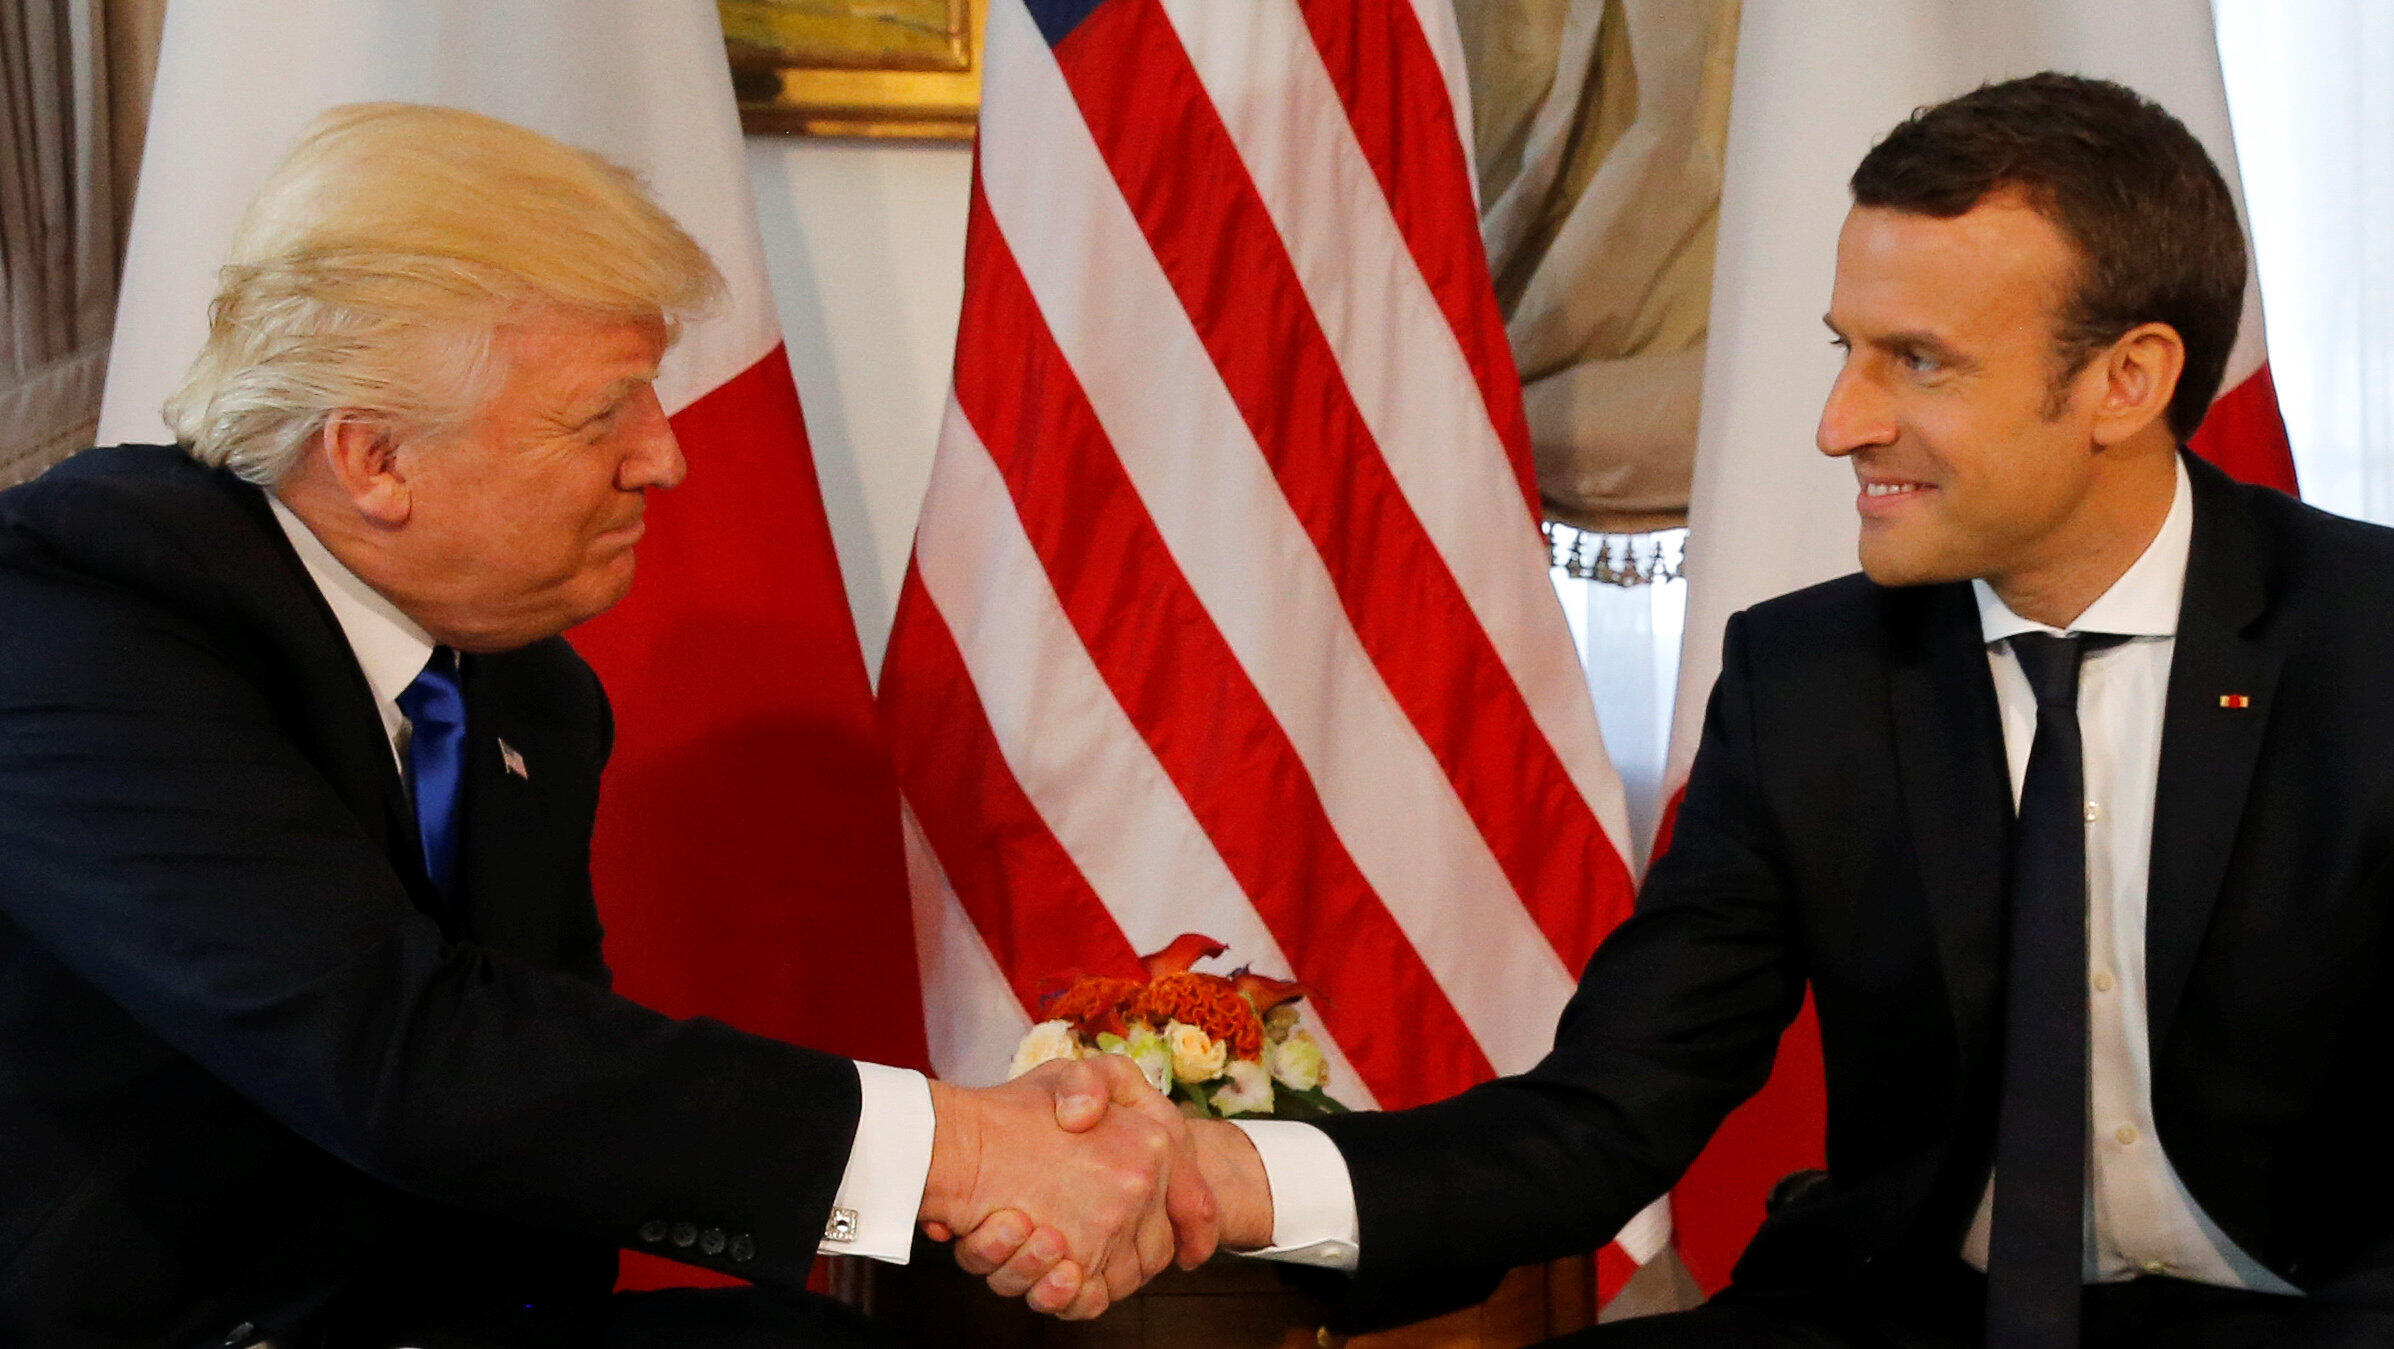 US President Donald Trump shakes jhands with Emmanuel Macron for a long time at a Nato summit in May